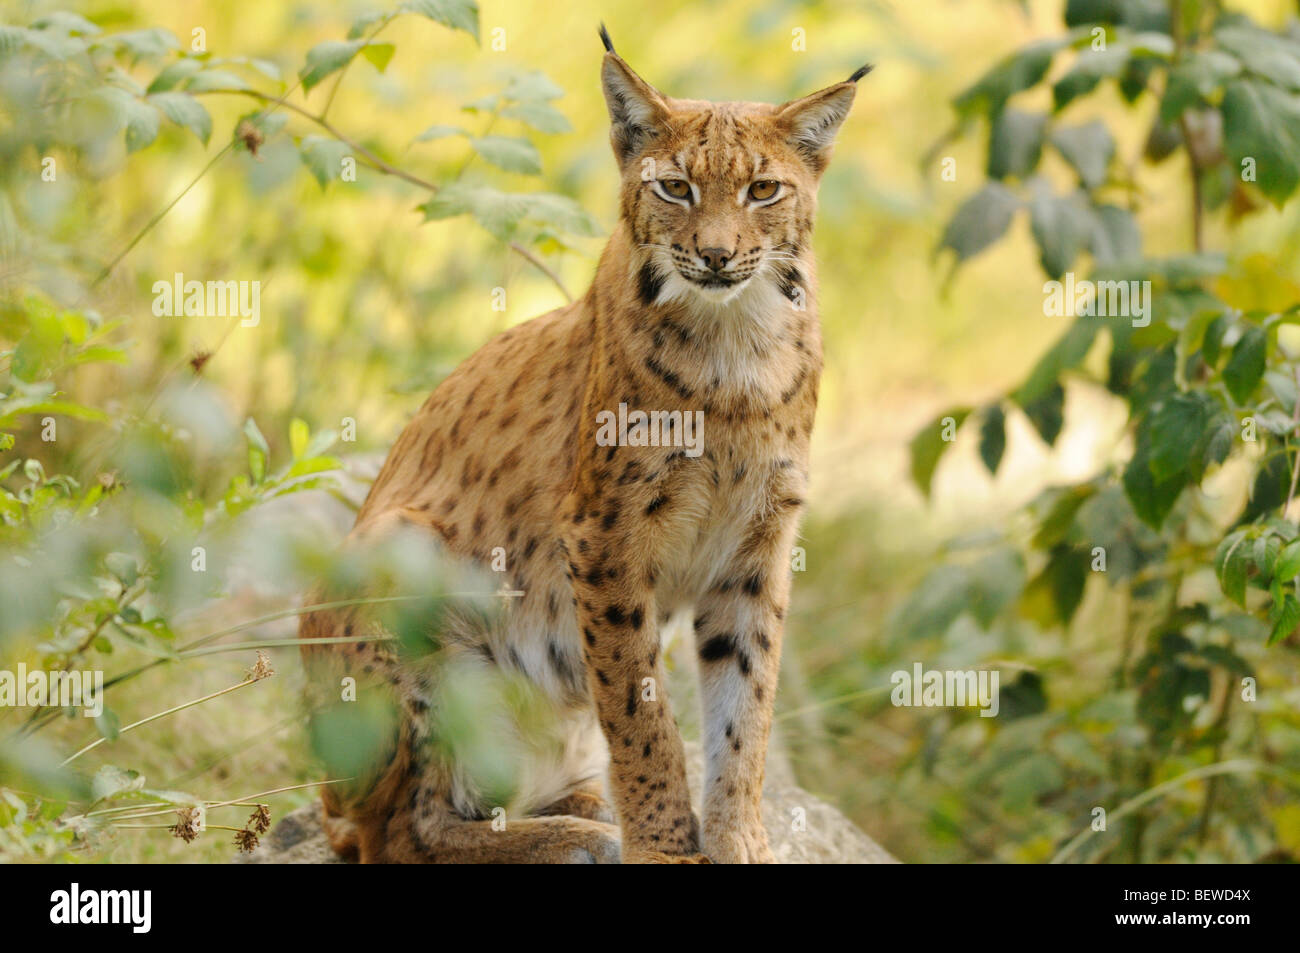 Adult Lynx (Lynx lynx) sitting on rock, Bavarian Forest, Germany, eye contact - Stock Image